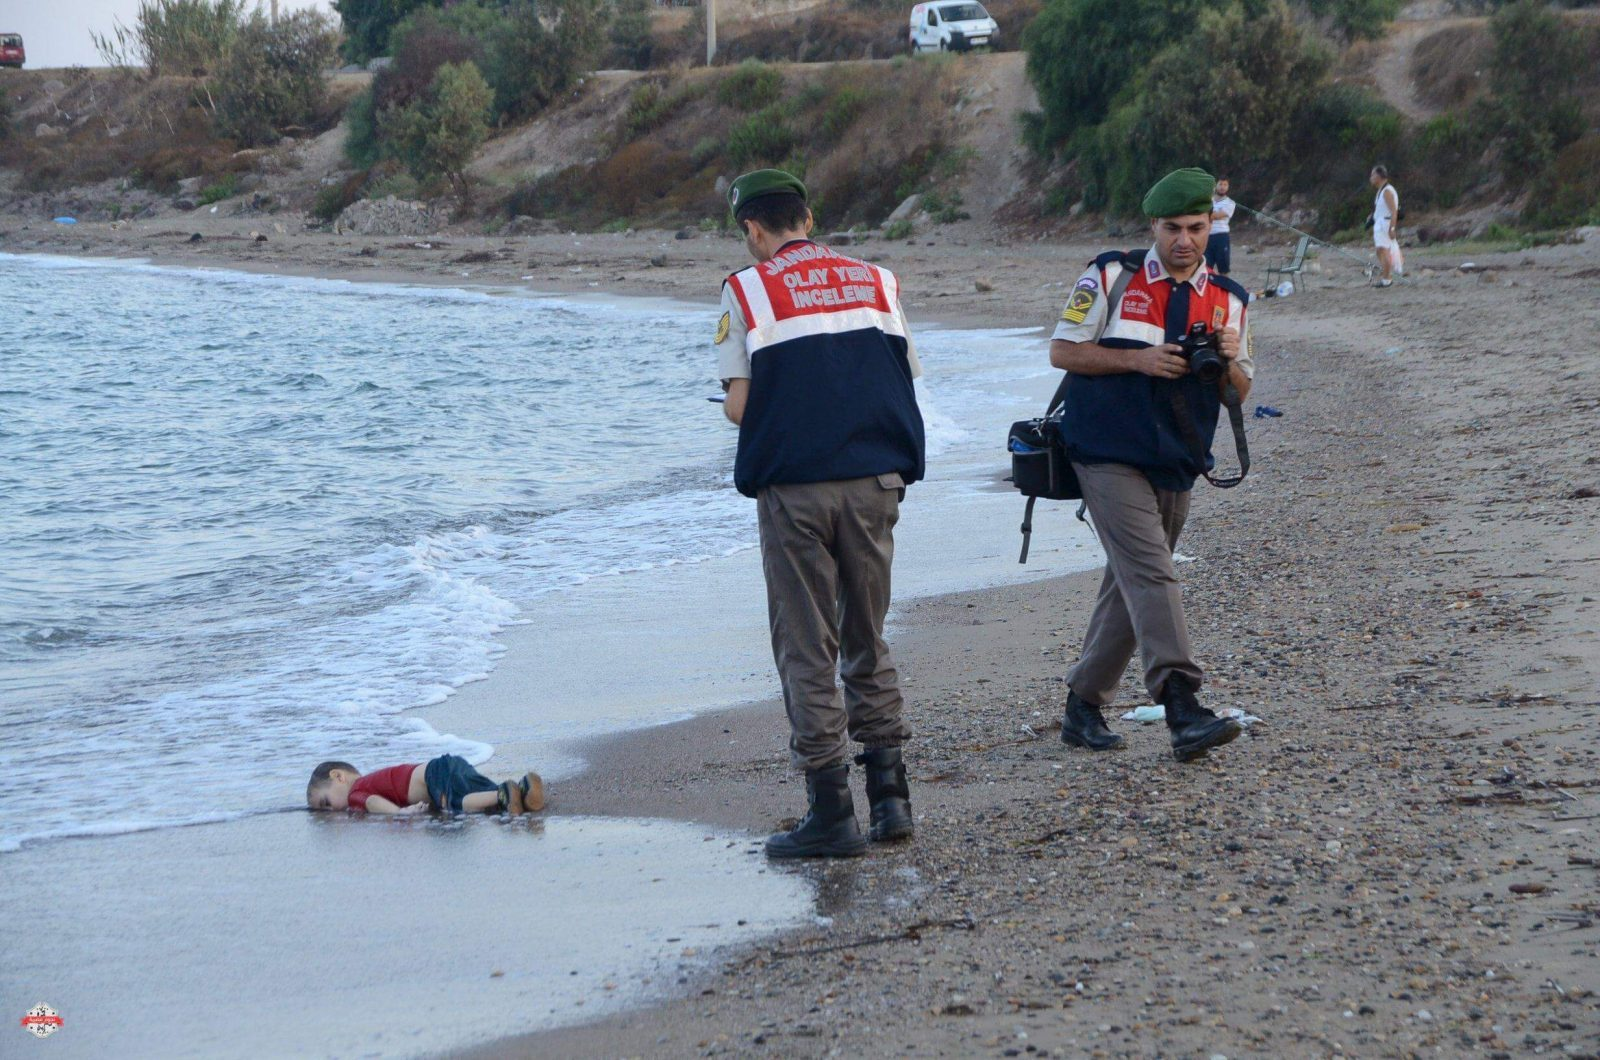 ATTENTION EDITORS - VISUAL COVERAGE OF SCENES OF DEATH OR INJURY A Turkish gendarmerie stands next to a young migrant، who drowned in a failed attempt to sail to the Greek island of Kos، as he lies on the shore in the coastal town of Bodrum، Turkey، September 2، 2015. At least 11 migrants believed to be Syrians drowned as two boats sank after leaving southwest Turkey for the Greek island of Kos، Turkey's Dogan news agency reported on Wednesday. It said a boat carrying 16 Syrian migrants had sunk after leaving the Akyarlar area of the Bodrum peninsula، and seven people had died. Four people were rescued and the coastguard was continuing its search for five people still missing. Separately، a boat carrying six Syrians sank after leaving Akyarlar on the same route. Three children and one woman drowned and two people survived after reaching the shore in life jackets. REUTERS/Nilufer Demir/DHA ATTENTION EDITORS - NO SALES. NO ARCHIVES. FOR EDITORIAL USE ONLY. NOT FOR SALE FOR MARKETING OR ADVERTISING CAMPAIGNS. TEMPLATE OUT. THIS IMAGE HAS BEEN SUPPLIED BY A THIRD PARTY. IT IS DISTRIBUTED، EXACTLY AS RECEIVED BY REUTERS، AS A SERVICE TO CLIENTS. TURKEY OUT. NO COMMERCIAL OR EDITORIAL SALES IN TURKEY.